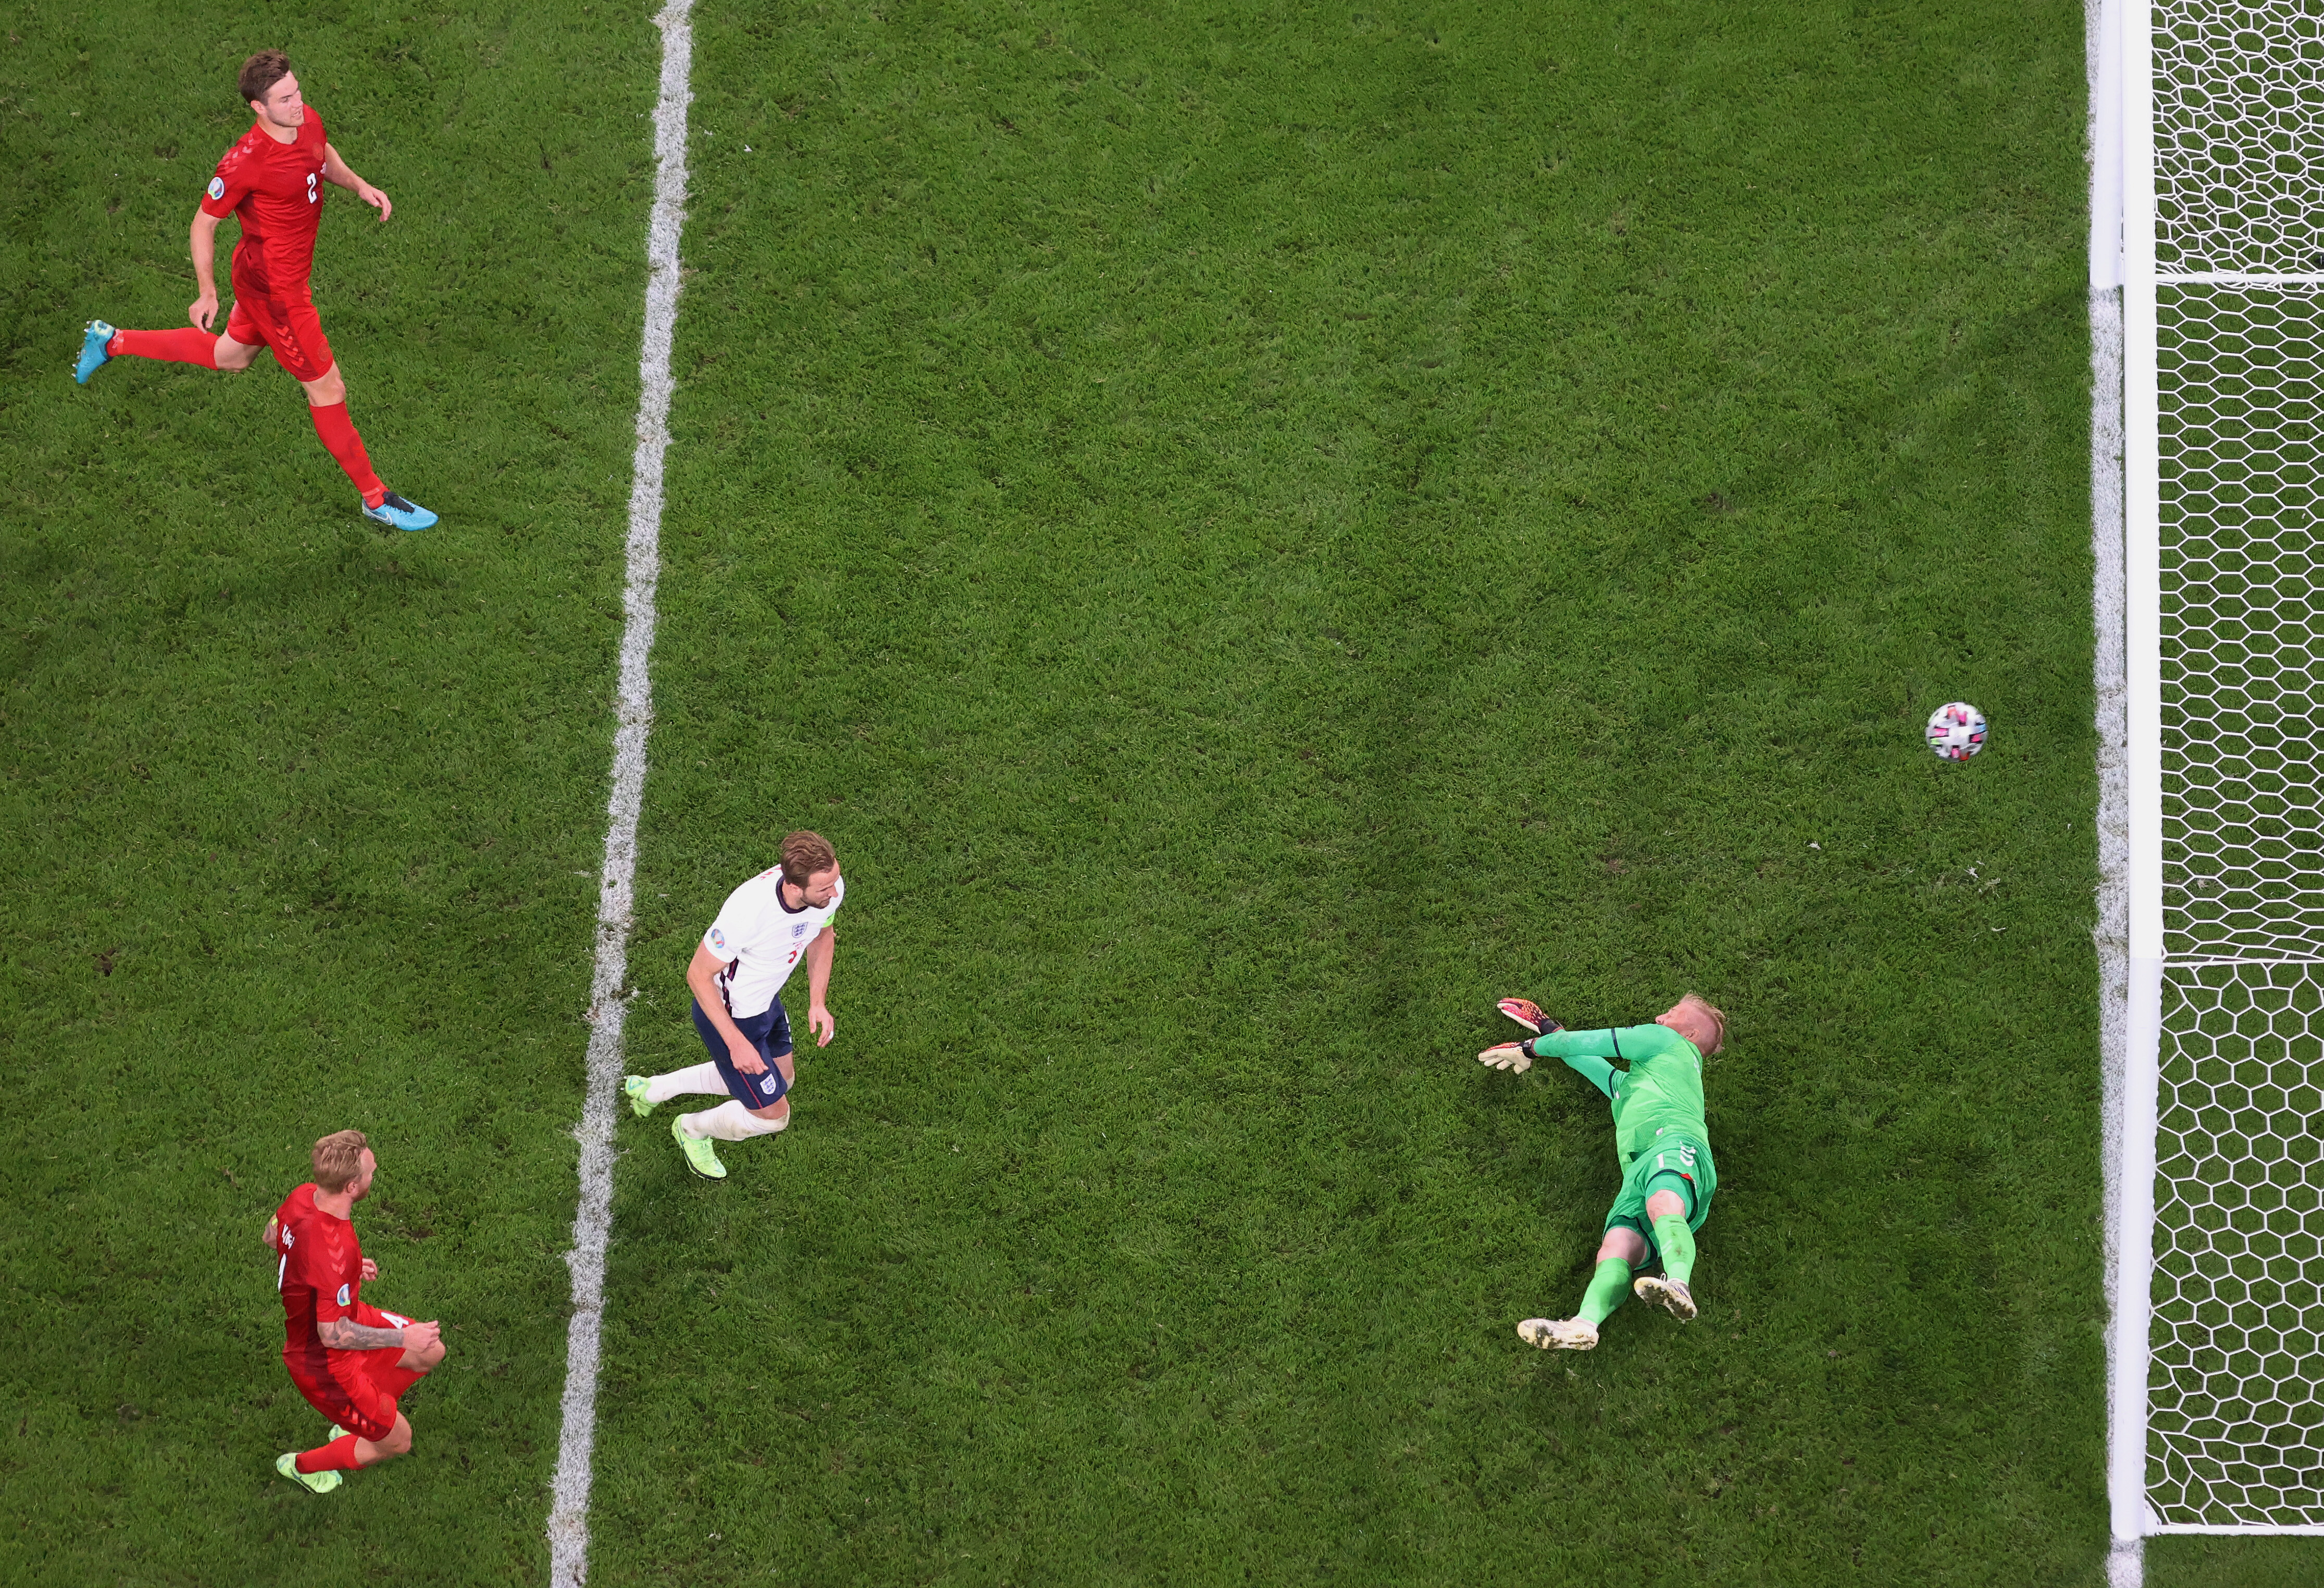 Euro 2020: England fined over $35,000 for laser incident during semifinal win over Denmark